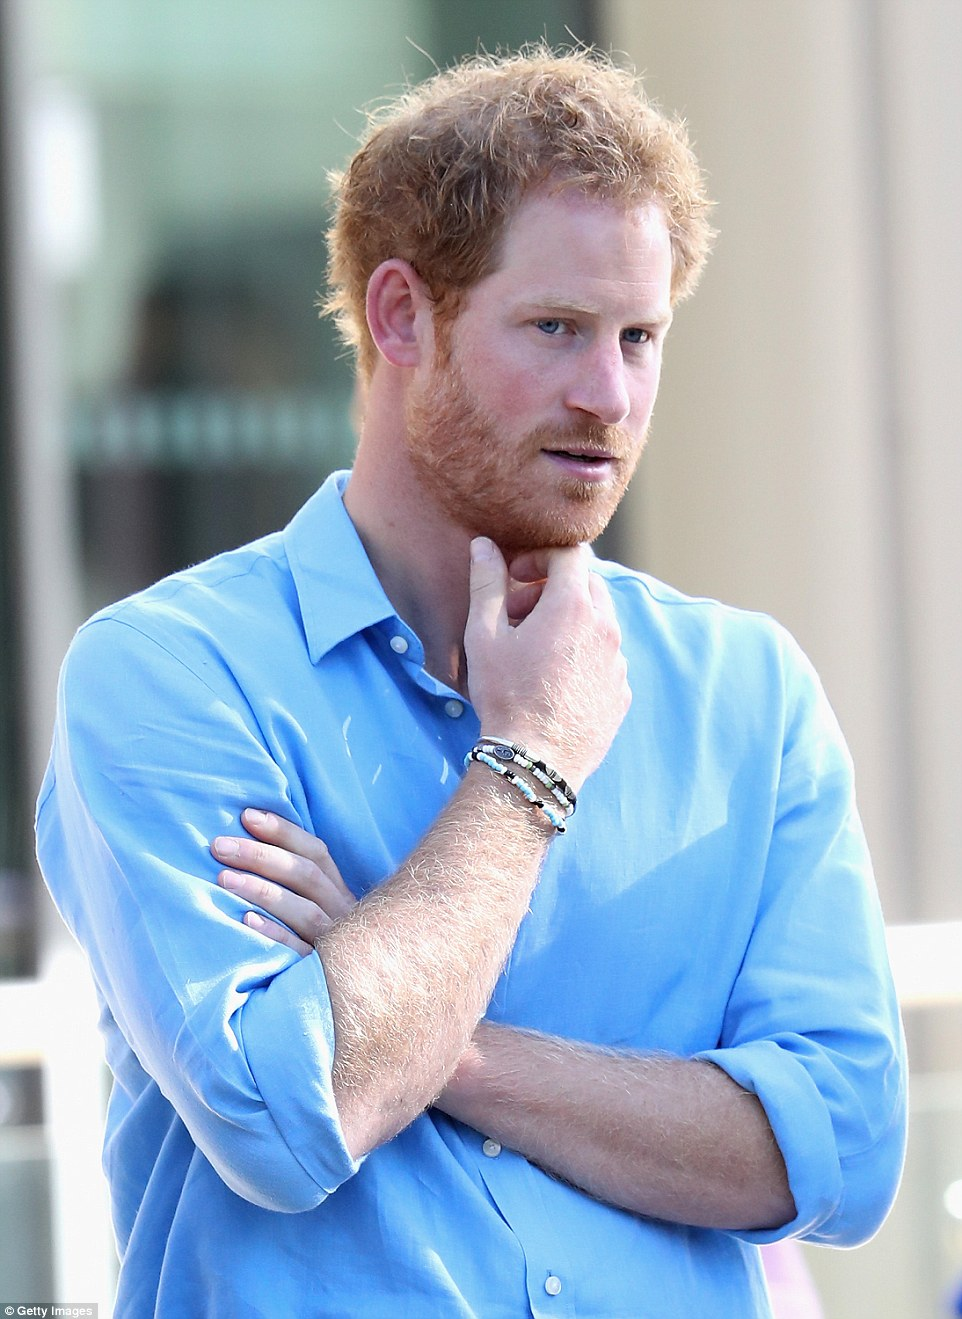 Prince Harry pictured in Aberdeen last month wearing a blue, white and black beaded bracelet that looks very much like the jewellery worn by his rumoured girlfriend Meghan